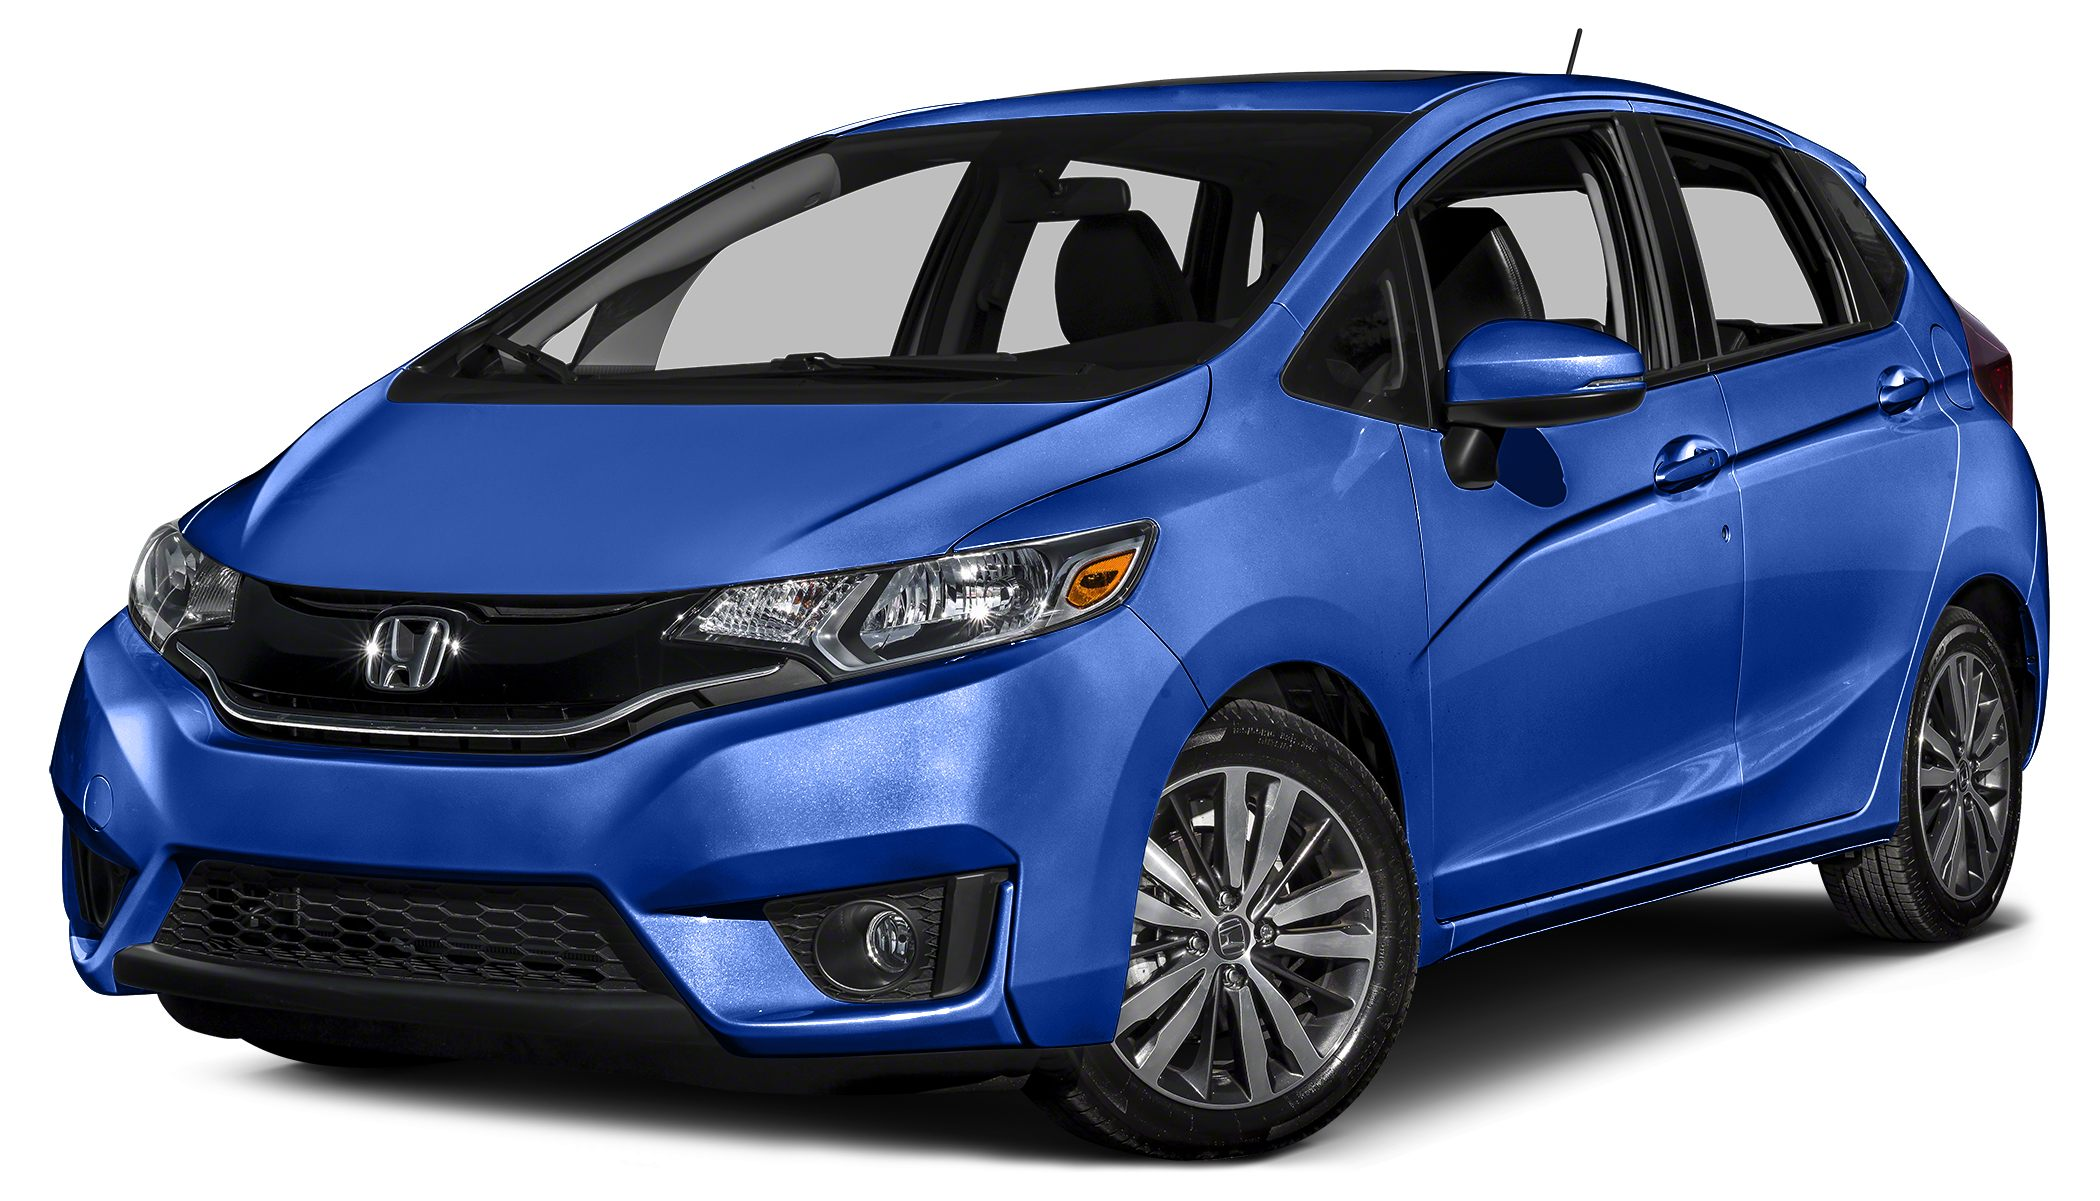 2015 Honda Fit EX-L ONLY 6K MILES HONDA CERTIFIED 7 YEAR 100000 MILE POWER TRAIN WARRANTY PLUS